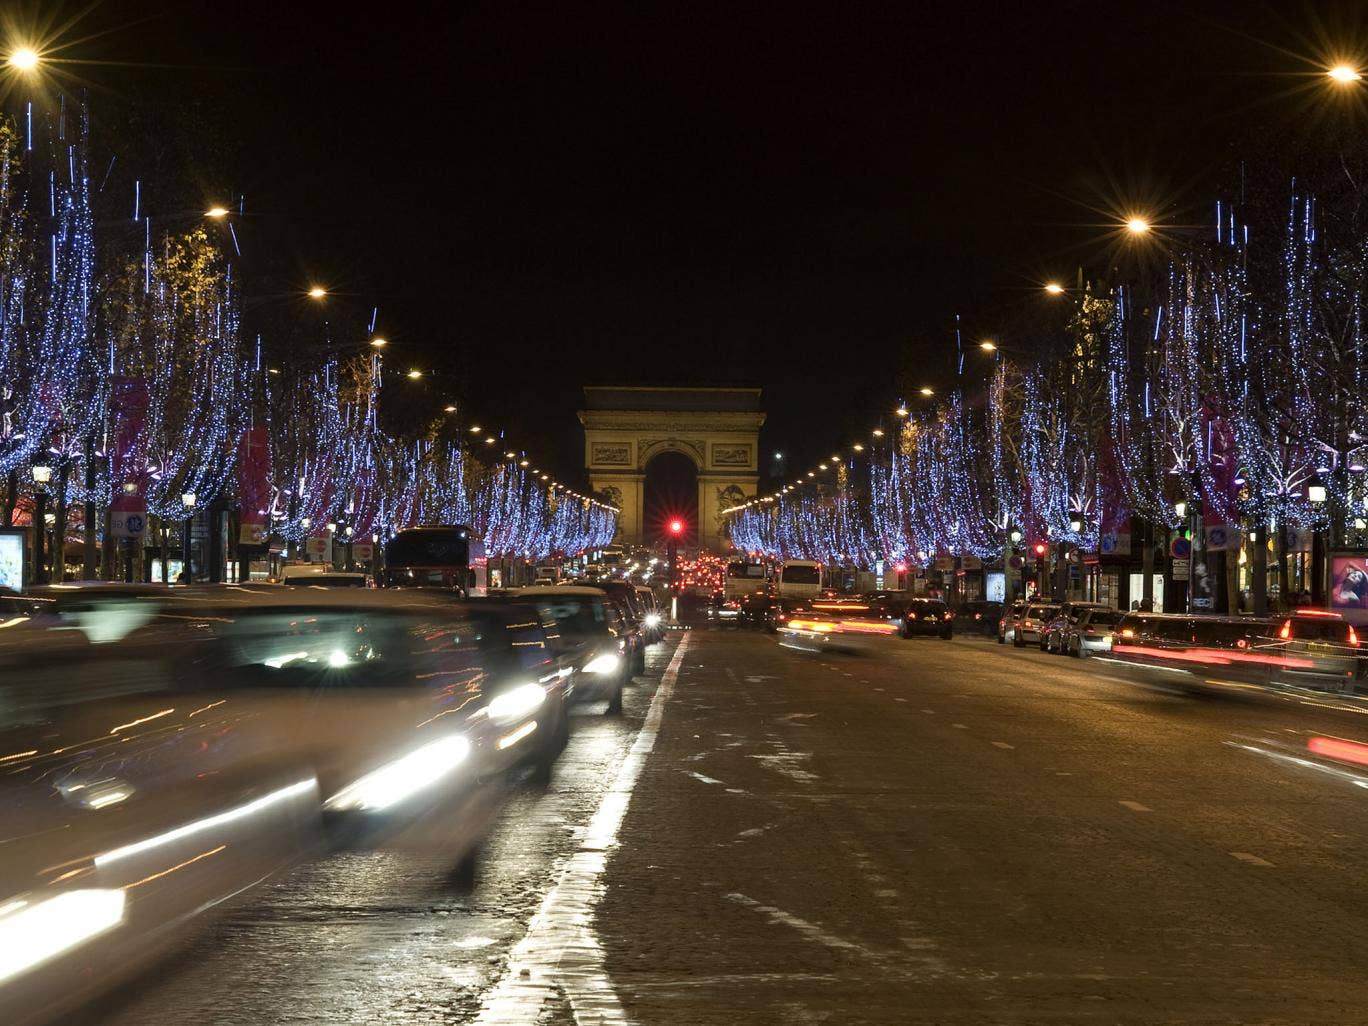 """PARIS: Paris' legendary label as the """"City of Light"""" may soon lose some of its luster, provoking an outcry from merchants, who say the government is being insensitive to France's image as a tourist destination."""